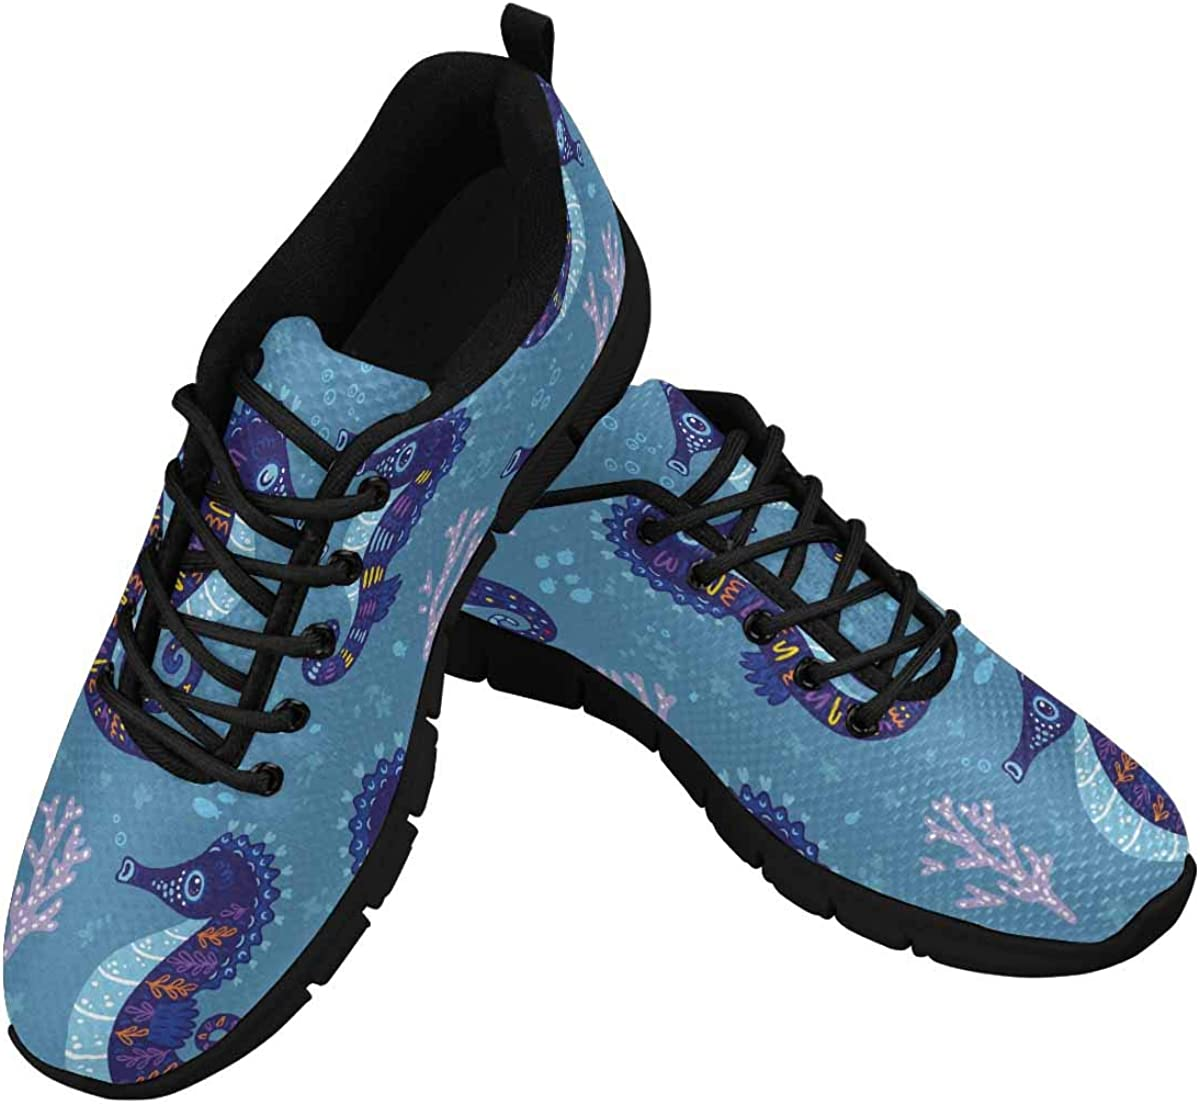 INTERESTPRINT Seahorses Pattern Women's Lightweight Athletic Casual Gym Sneakers